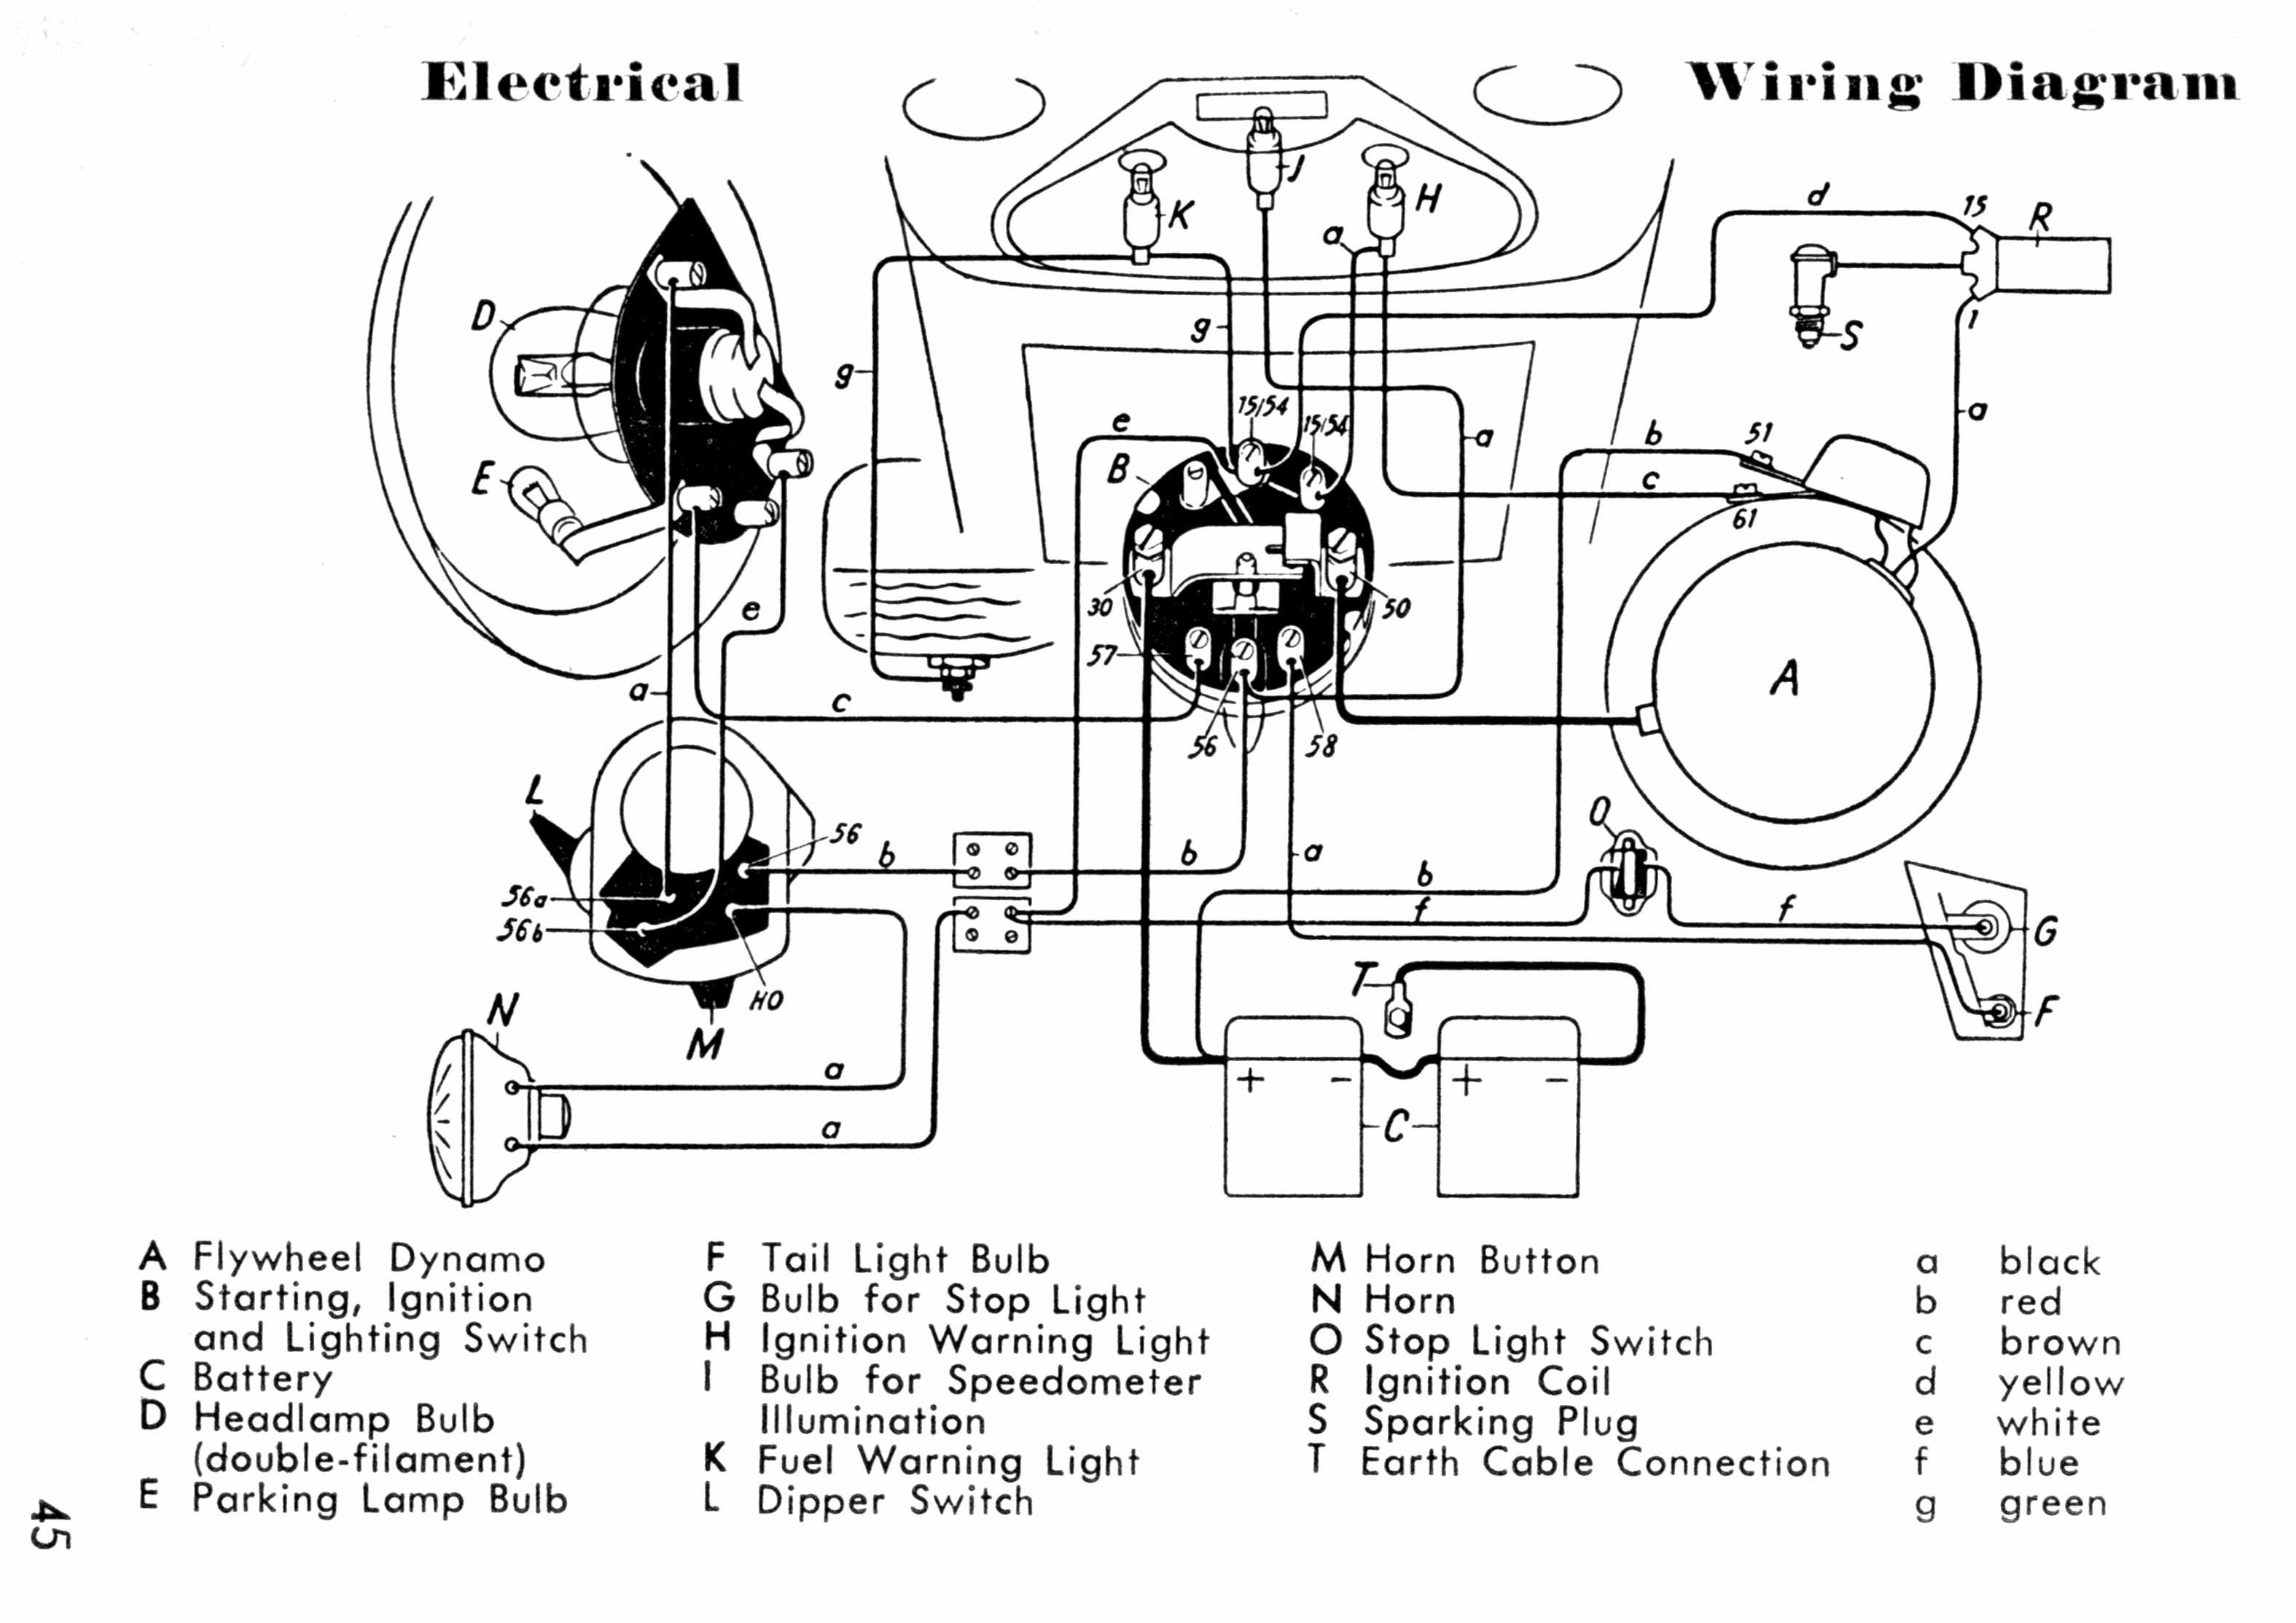 Universal Headlight Switch Diagram Auto Parts Diagrams